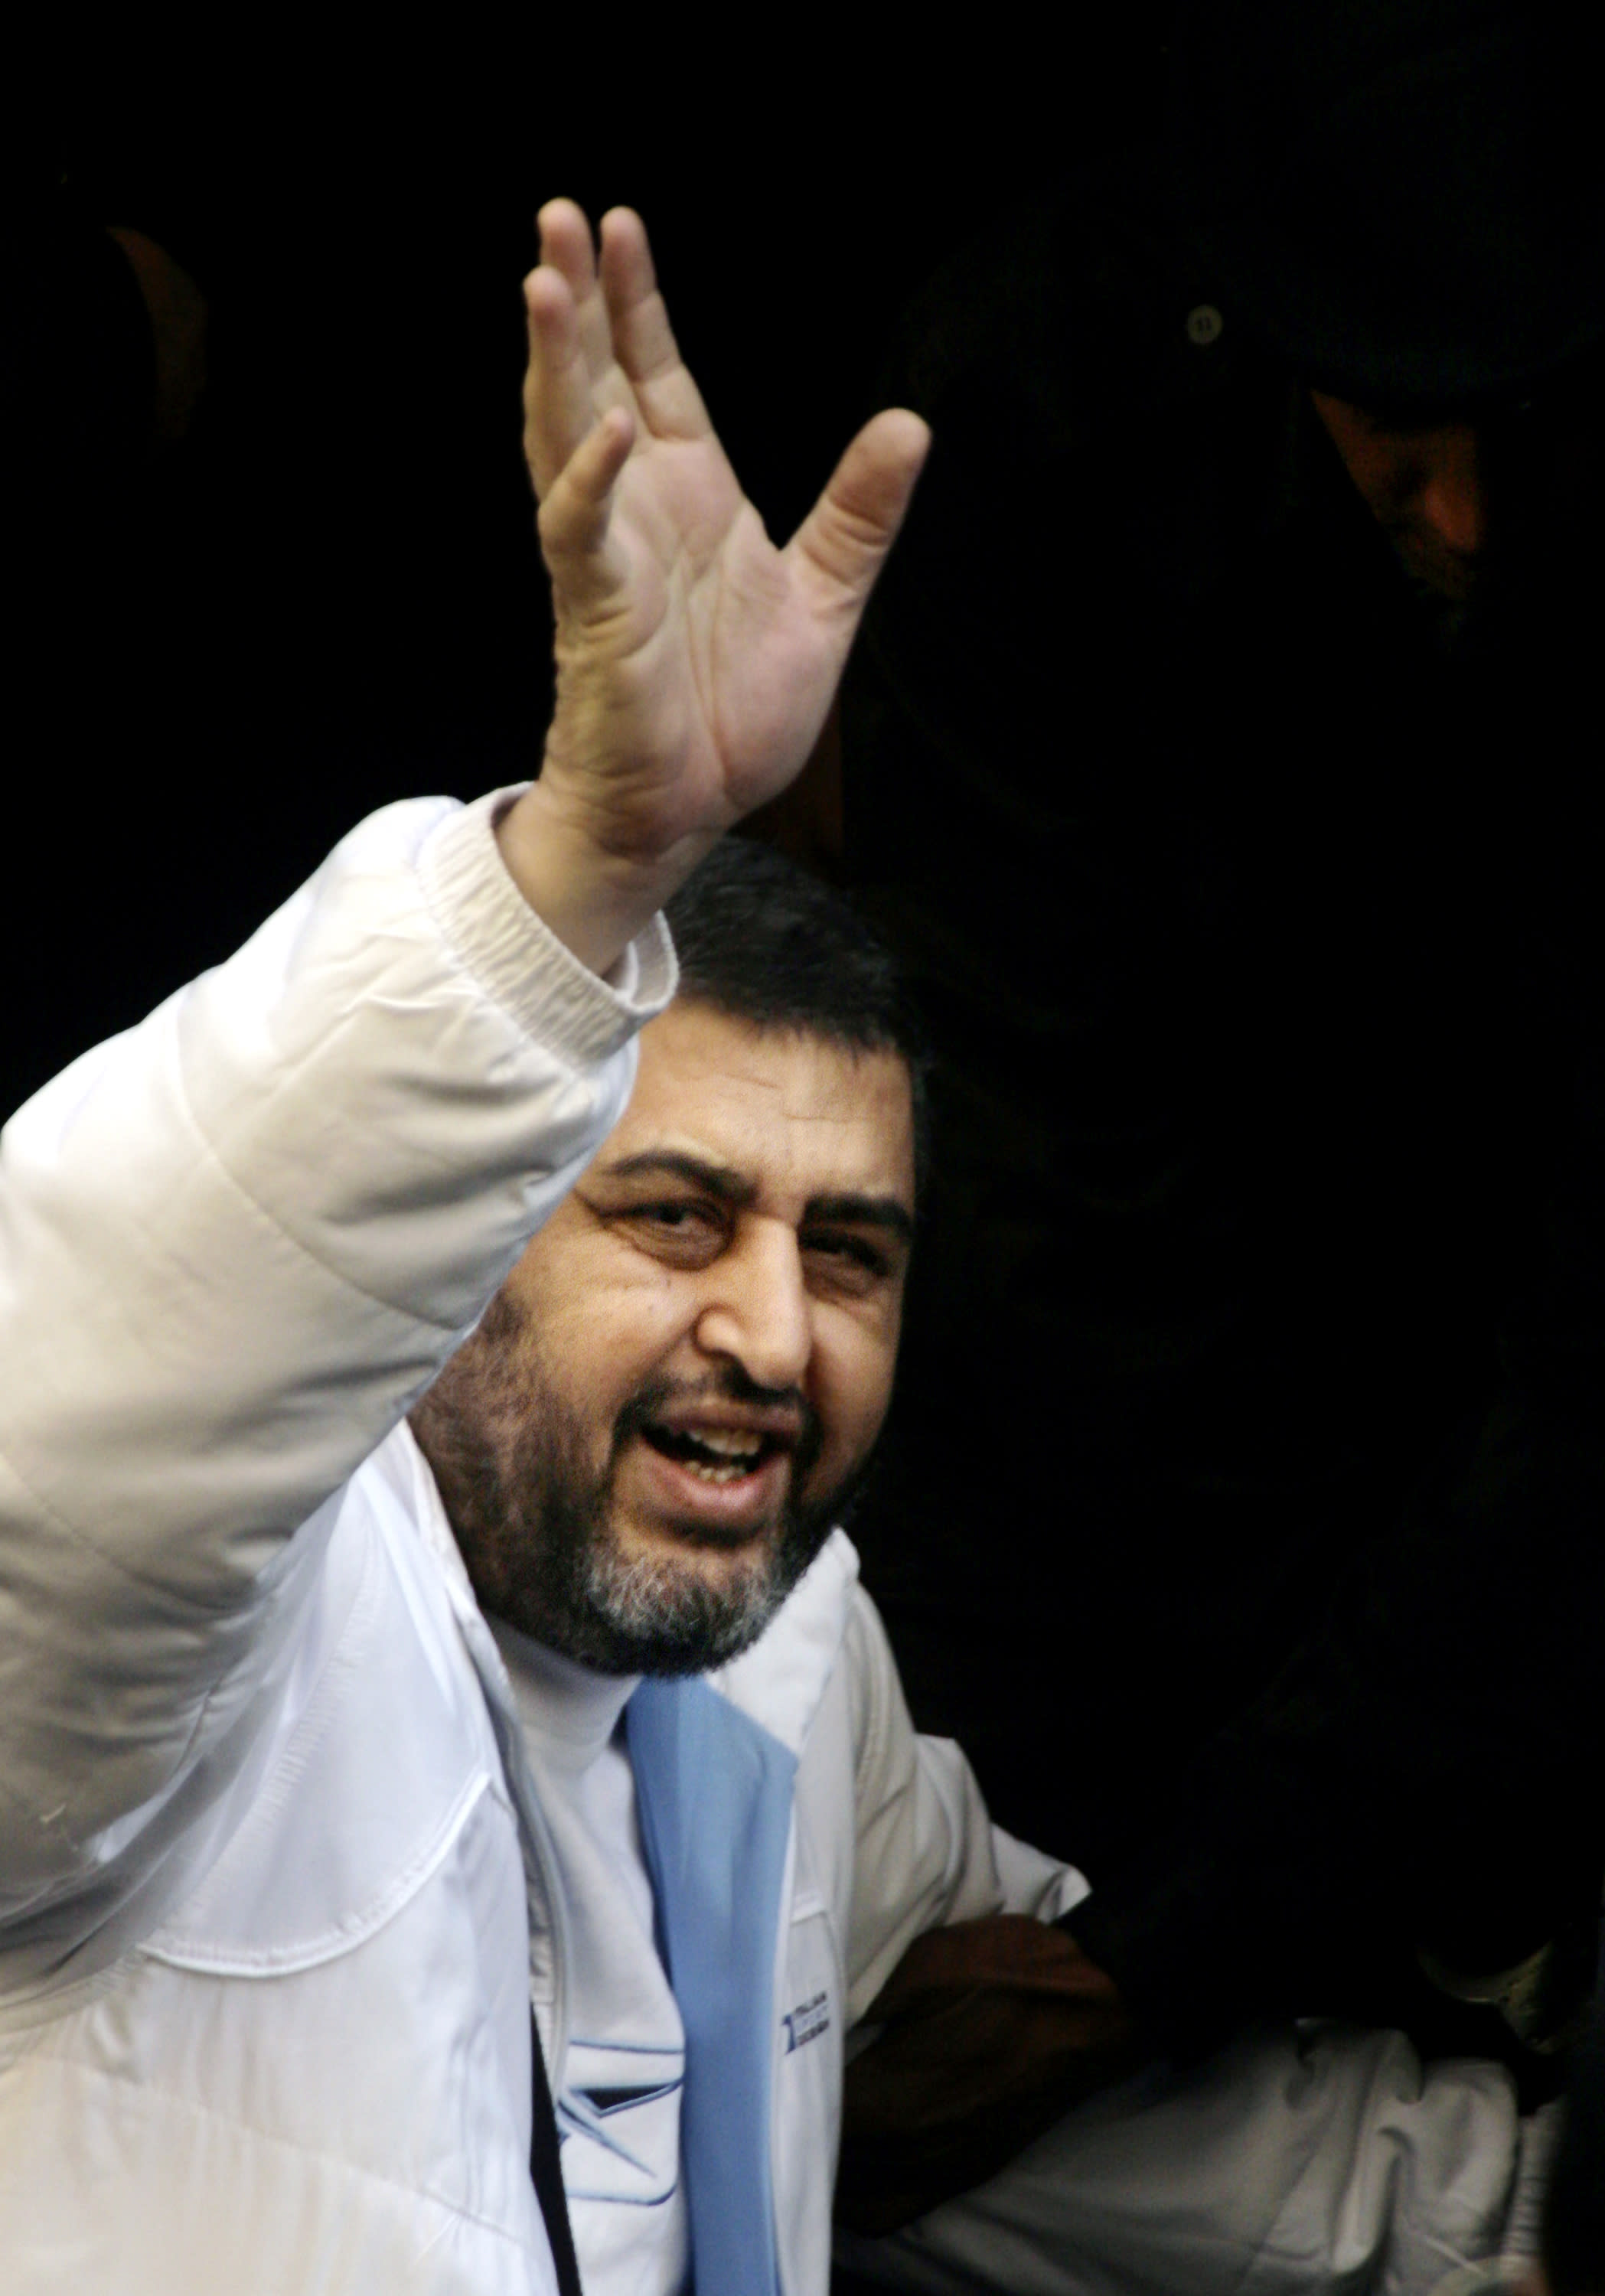 FILE- In this Monday, Dec. 10, 2007 file photo, Egyptian Muslim Brotherhood's top financial figure Khayrat el-Shater gestures as he leaves a prison vehicle to enter one of his civilian investigations in Cairo, Egypt. Egypt's Muslim Brotherhood on Saturday said it decided to field the movement's deputy leader and top strategist as its presidential candidate, topping off its success in legislative elections with a bid for the country's most powerful post. Top leaders of the country's most influential political group announced in a press conference that it selected Khayrat el-Shater to contest the presidential race set to start in May.(AP Photo/Amr Nabil, File)